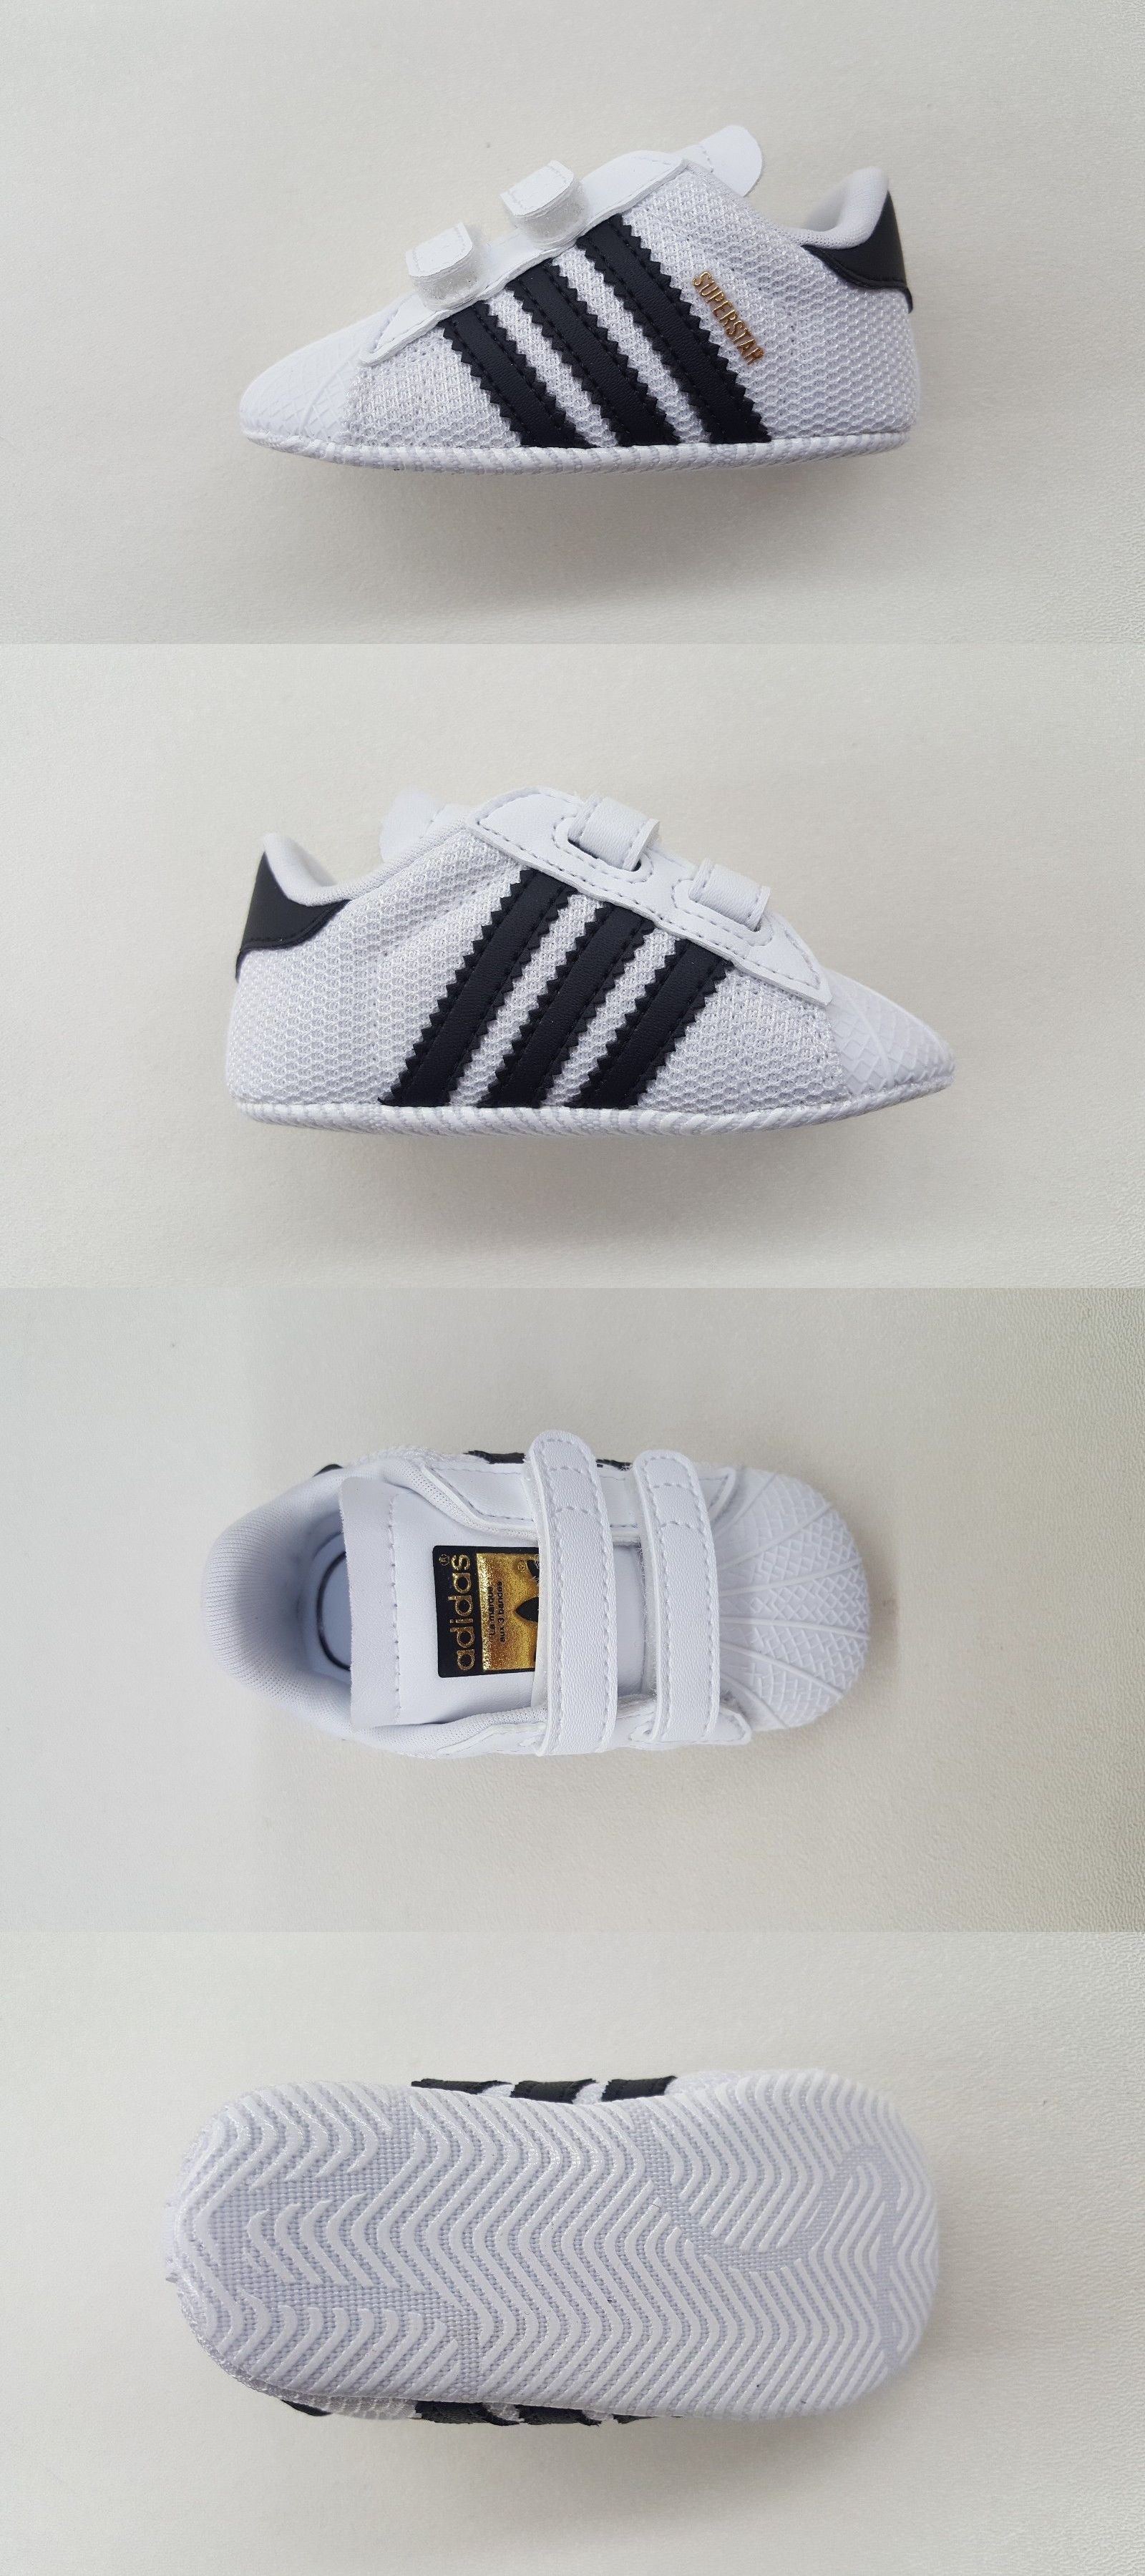 best service 7e173 59a21 Infant Shoes  Adidas Originals Superstar White Black Gold Newborn Baby  Sneakers S79916 BUY IT NOW ONLY   36.0